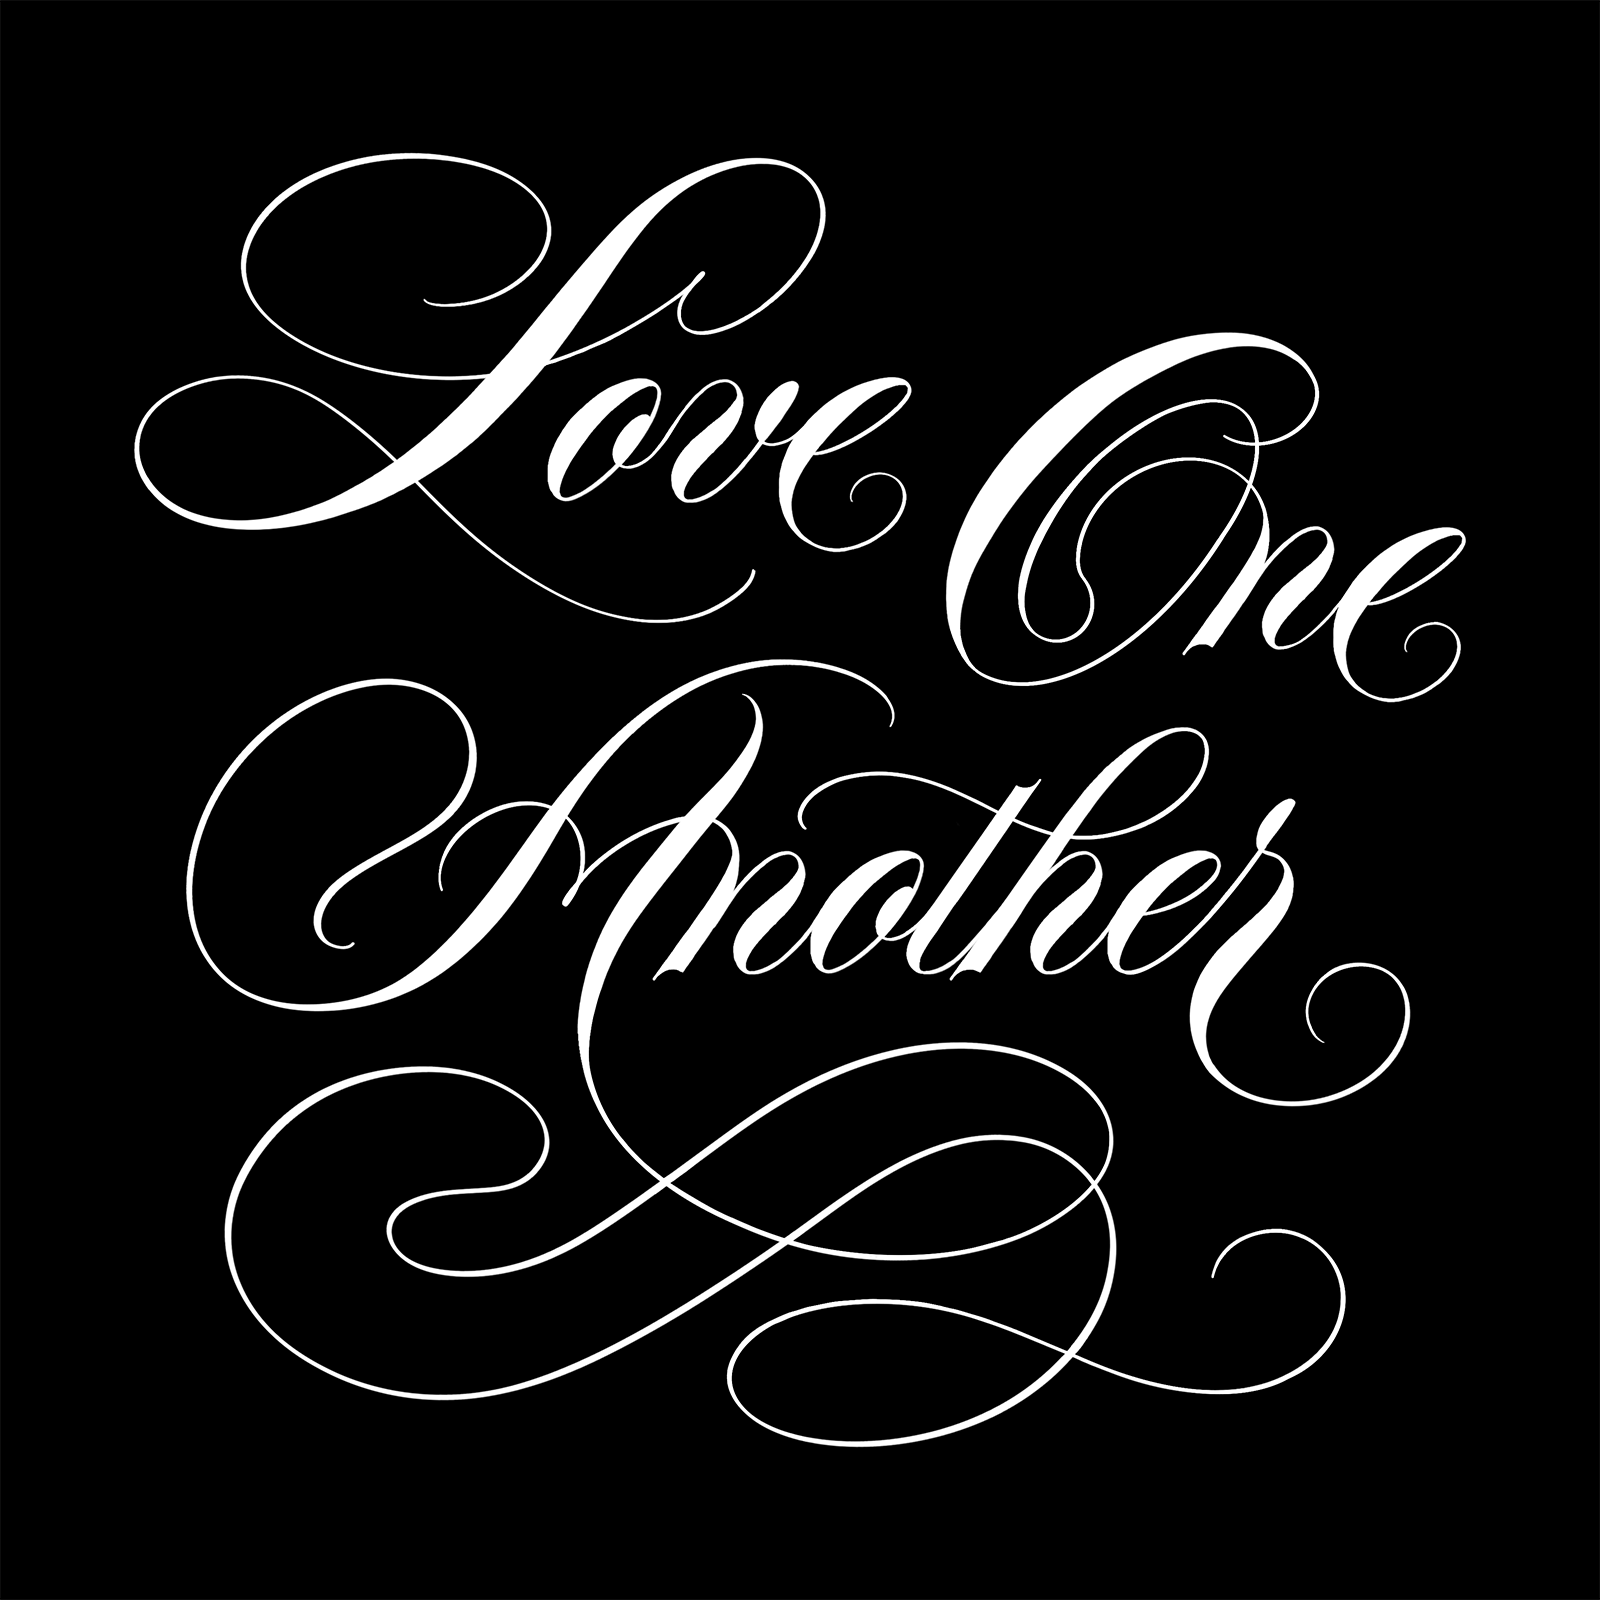 Love One Another - Leah Chong